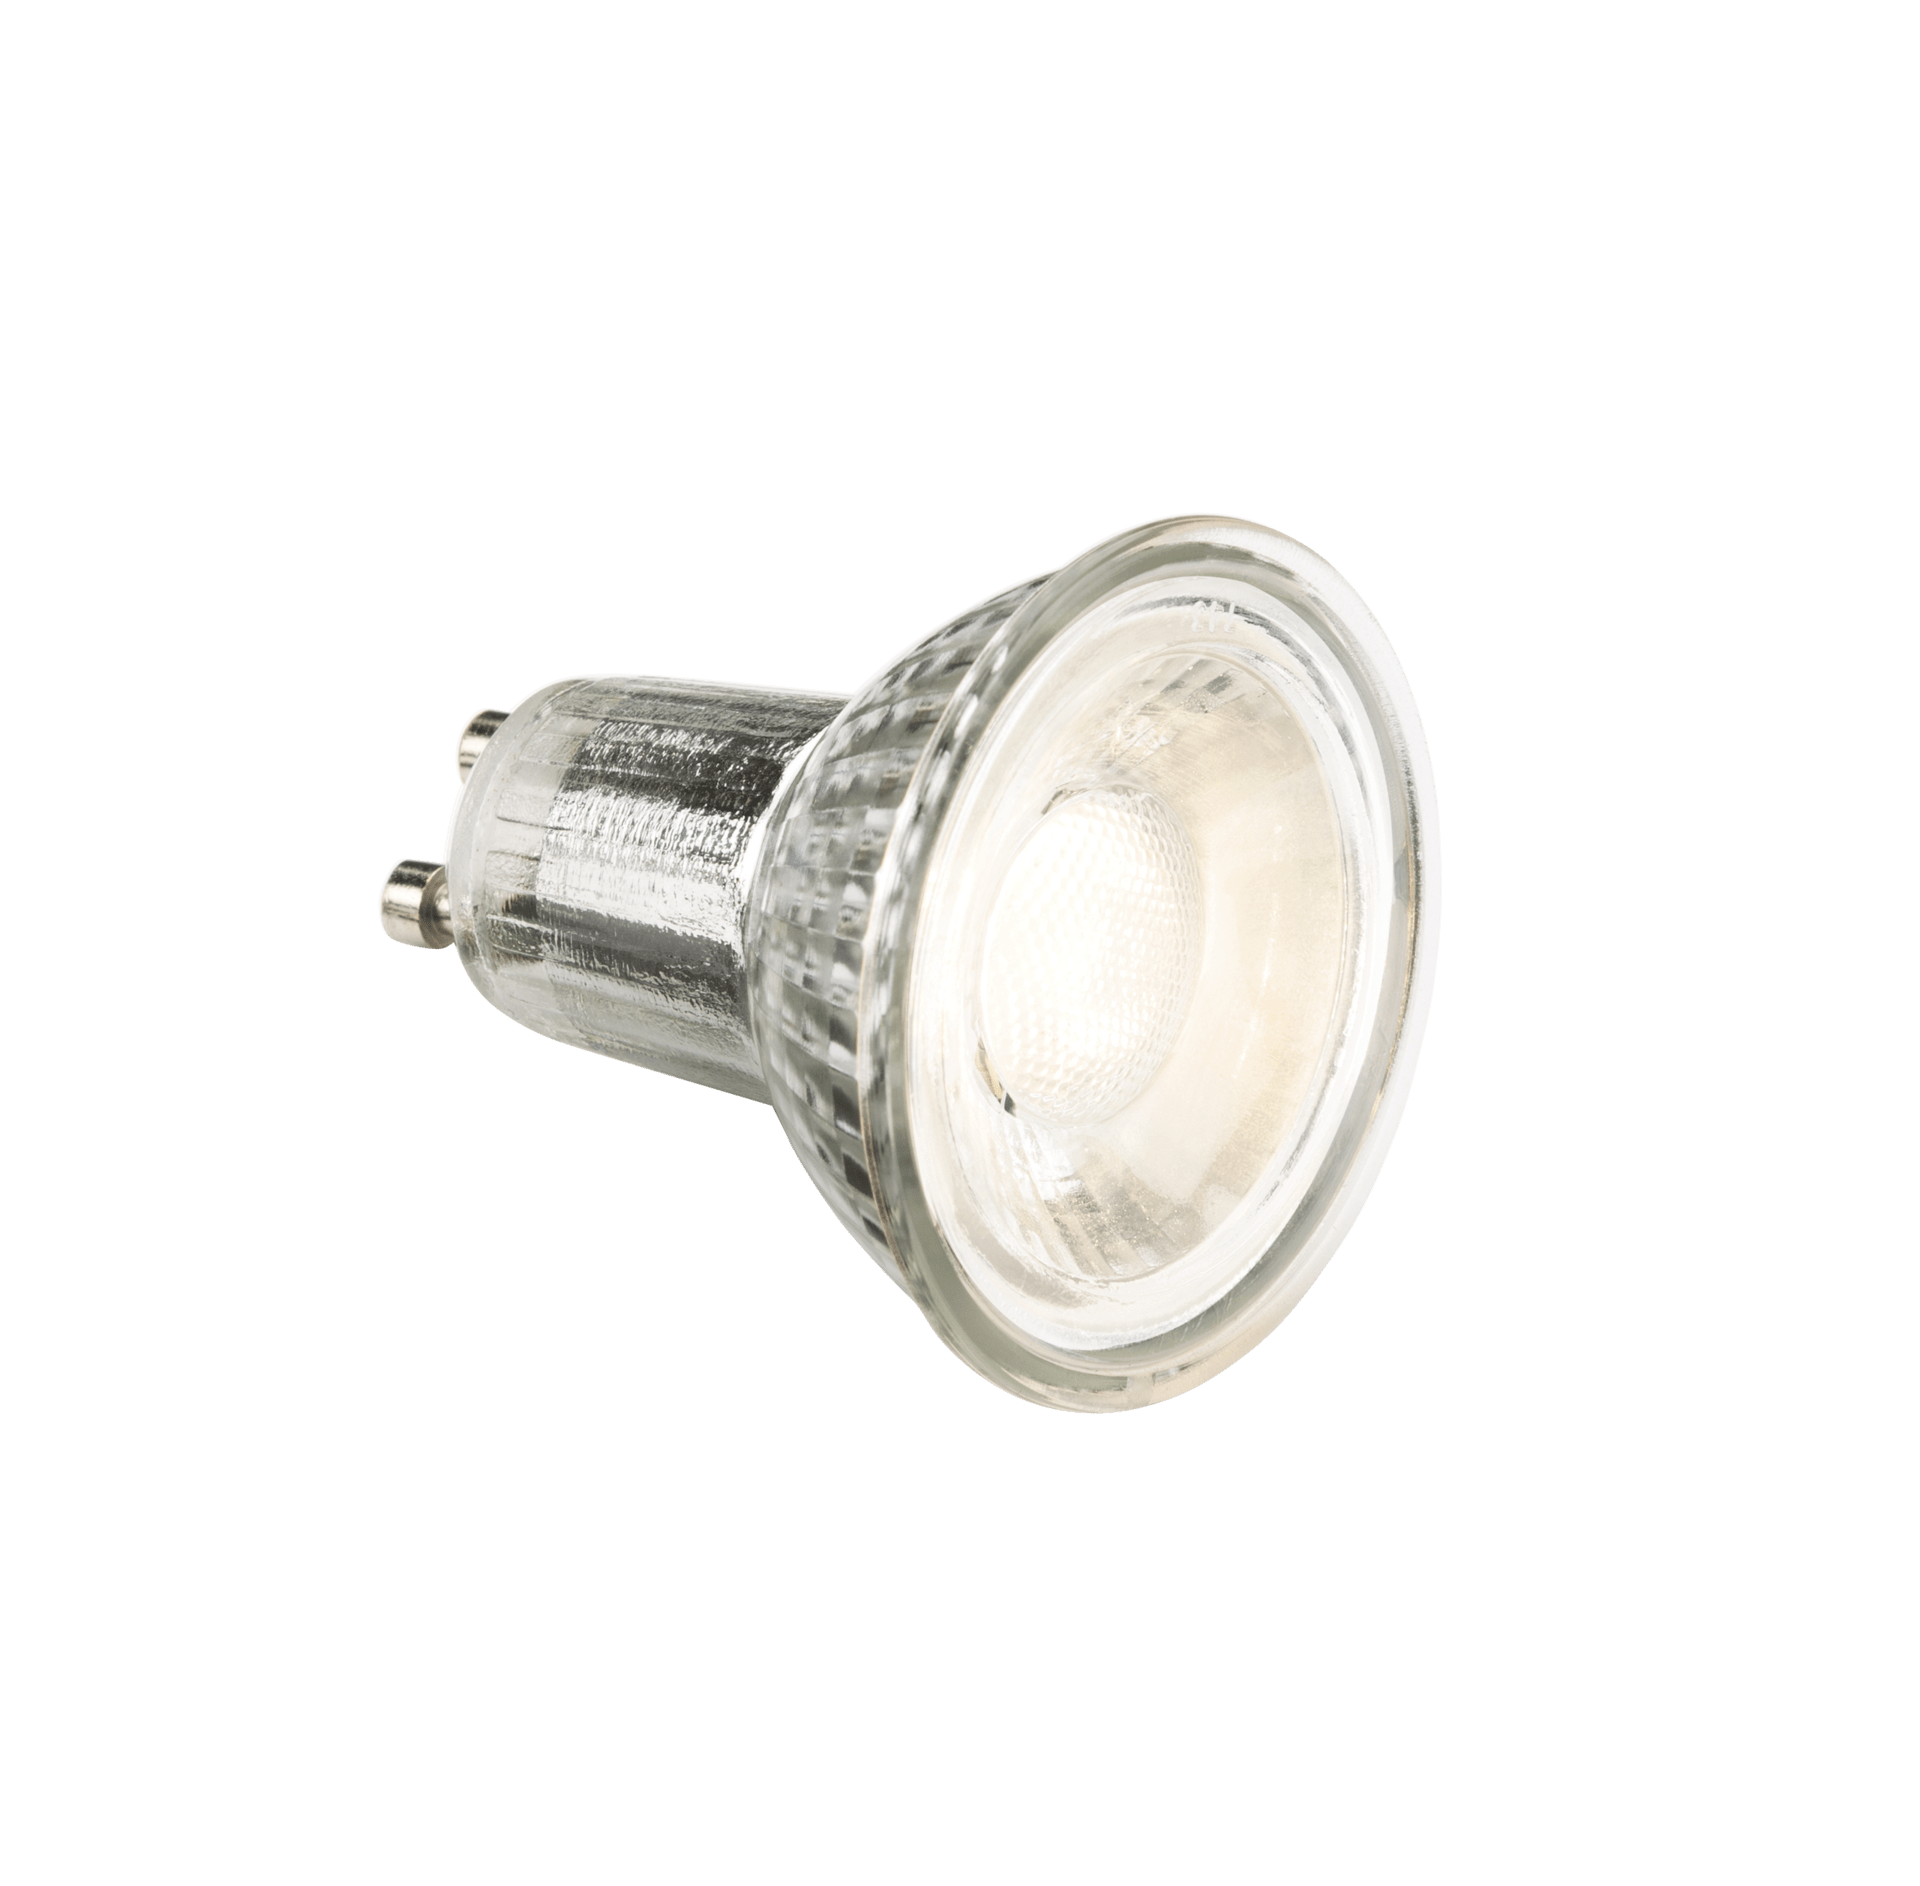 Gu10 C 230v 5w Gu10 Led 6000k Dimmable Wimbledon Lighting And